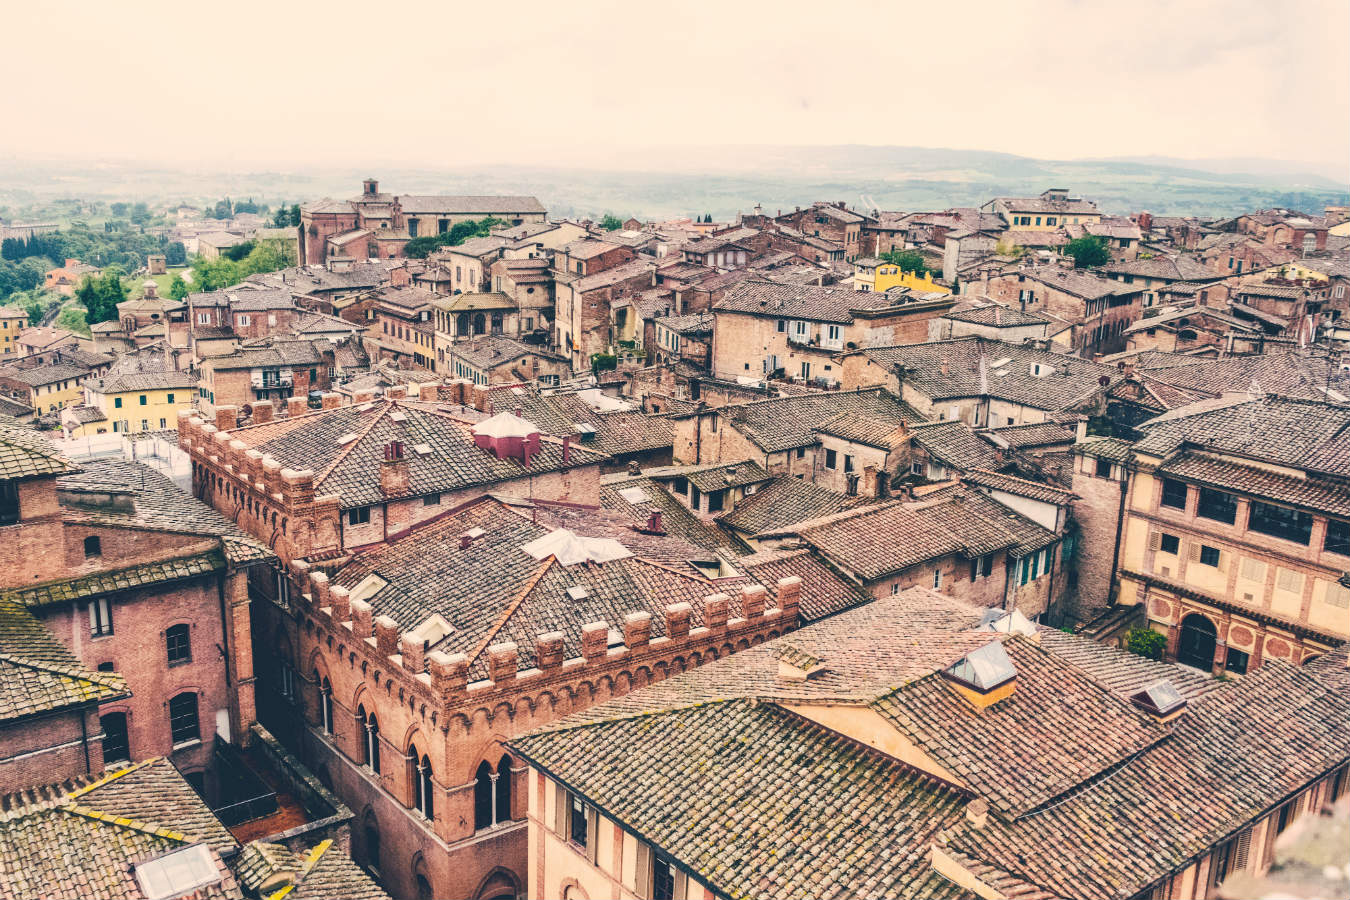 Italian rooftops. Photo by pepe nero, Unsplash